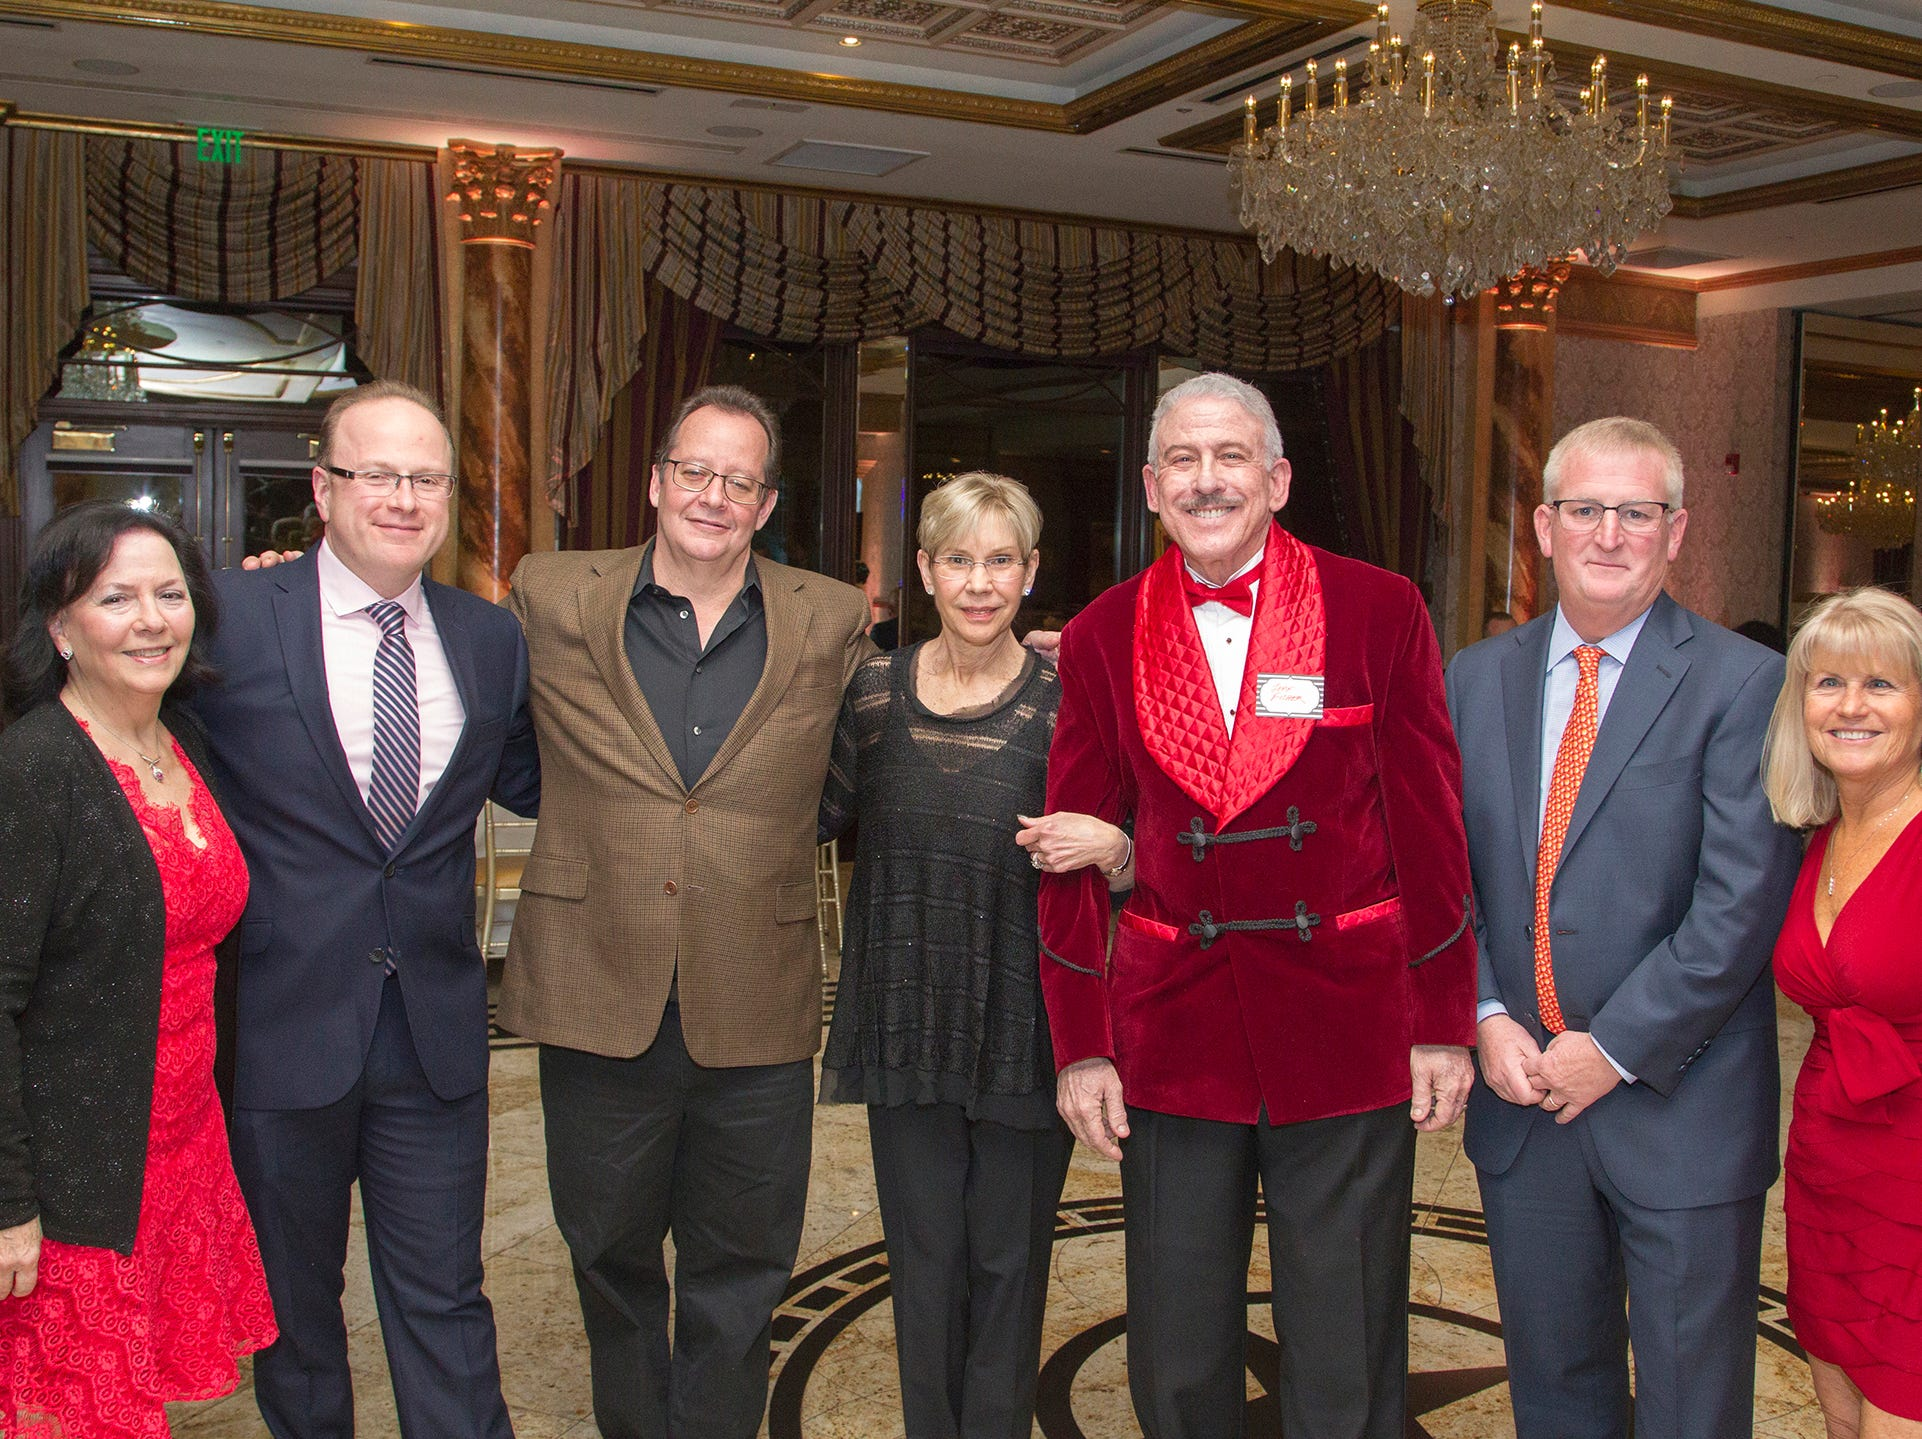 Board of Trustees, Janet Arena, Augie Zenzius, David Appell, Joane Dowling, Dr. Jeff Fisher, Doug Phelps, Diane Lento. Institute for Educational Achievement (IEA) Dinner Dance at Season in Washington Twp. 2/2/2019